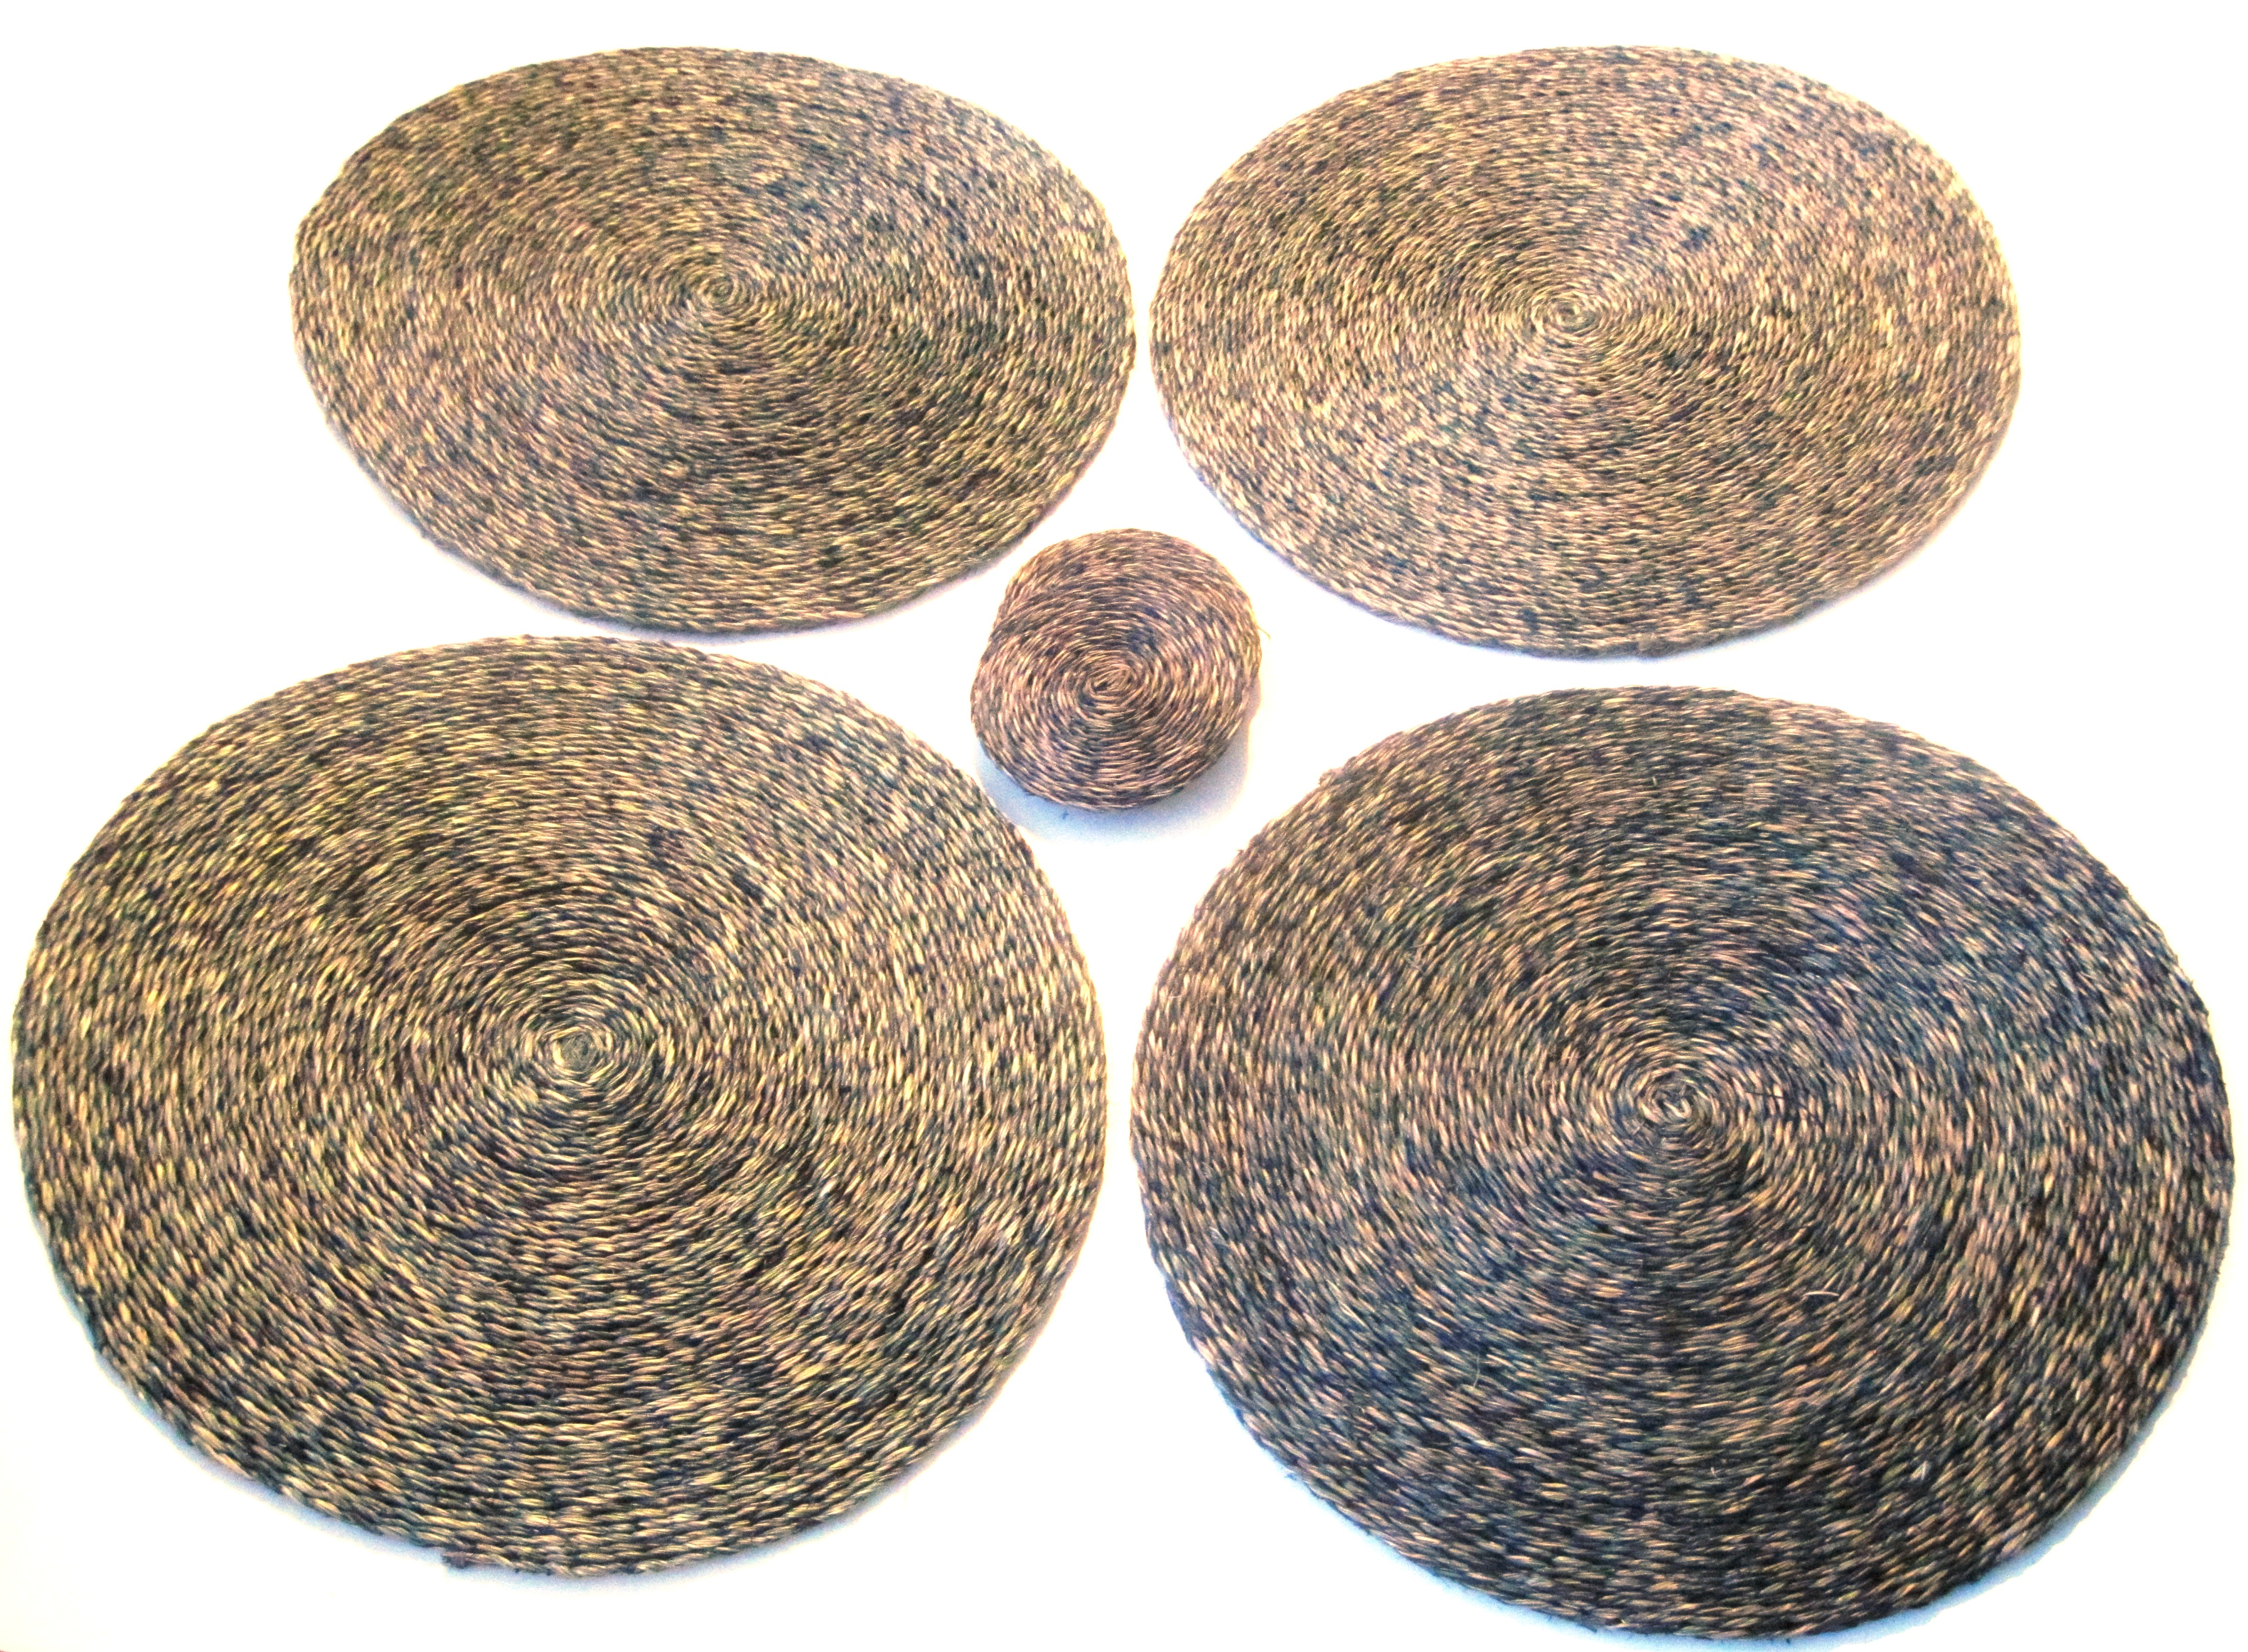 Lutindzi Grass Handwoven Placemat/Coaster Set of 4 -Smoke Tweed